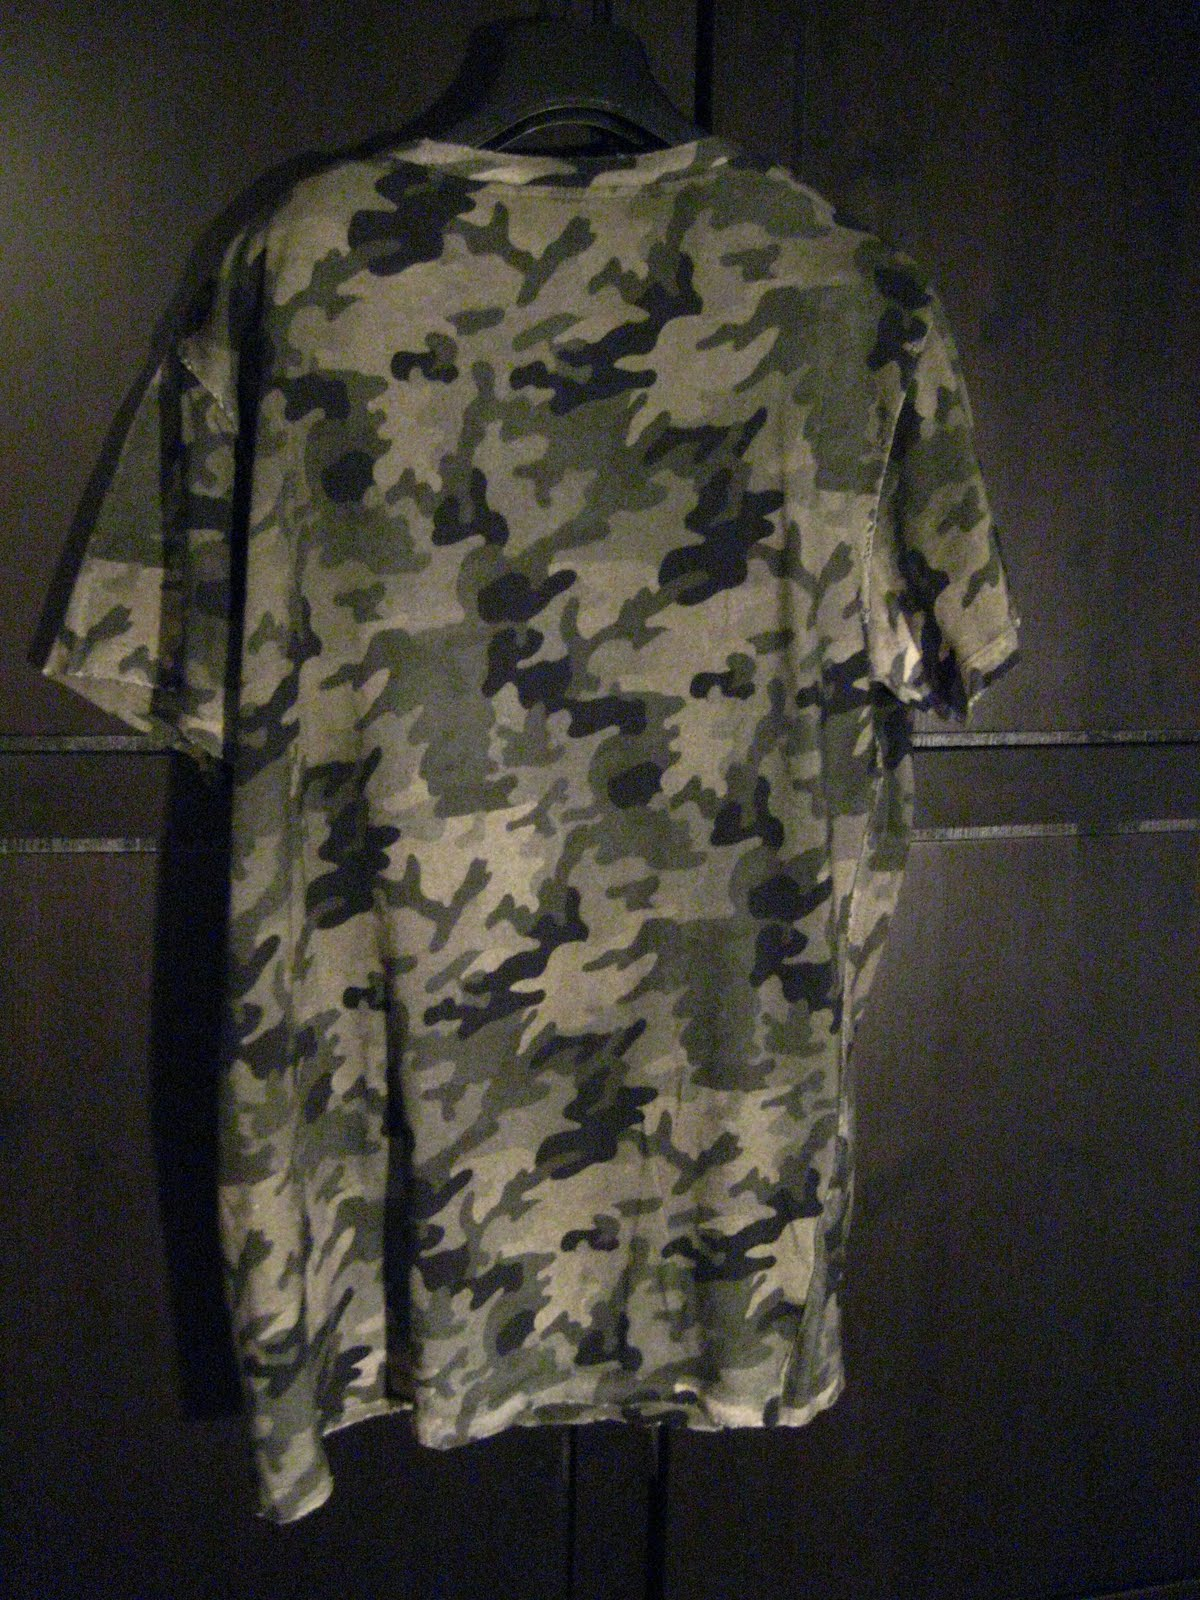 2678c02c BALMAIN HOMME over size tiger print t-shirt in khaki green camouflage base.  The t-shirt has the bullet ripped effect . Made in Italy